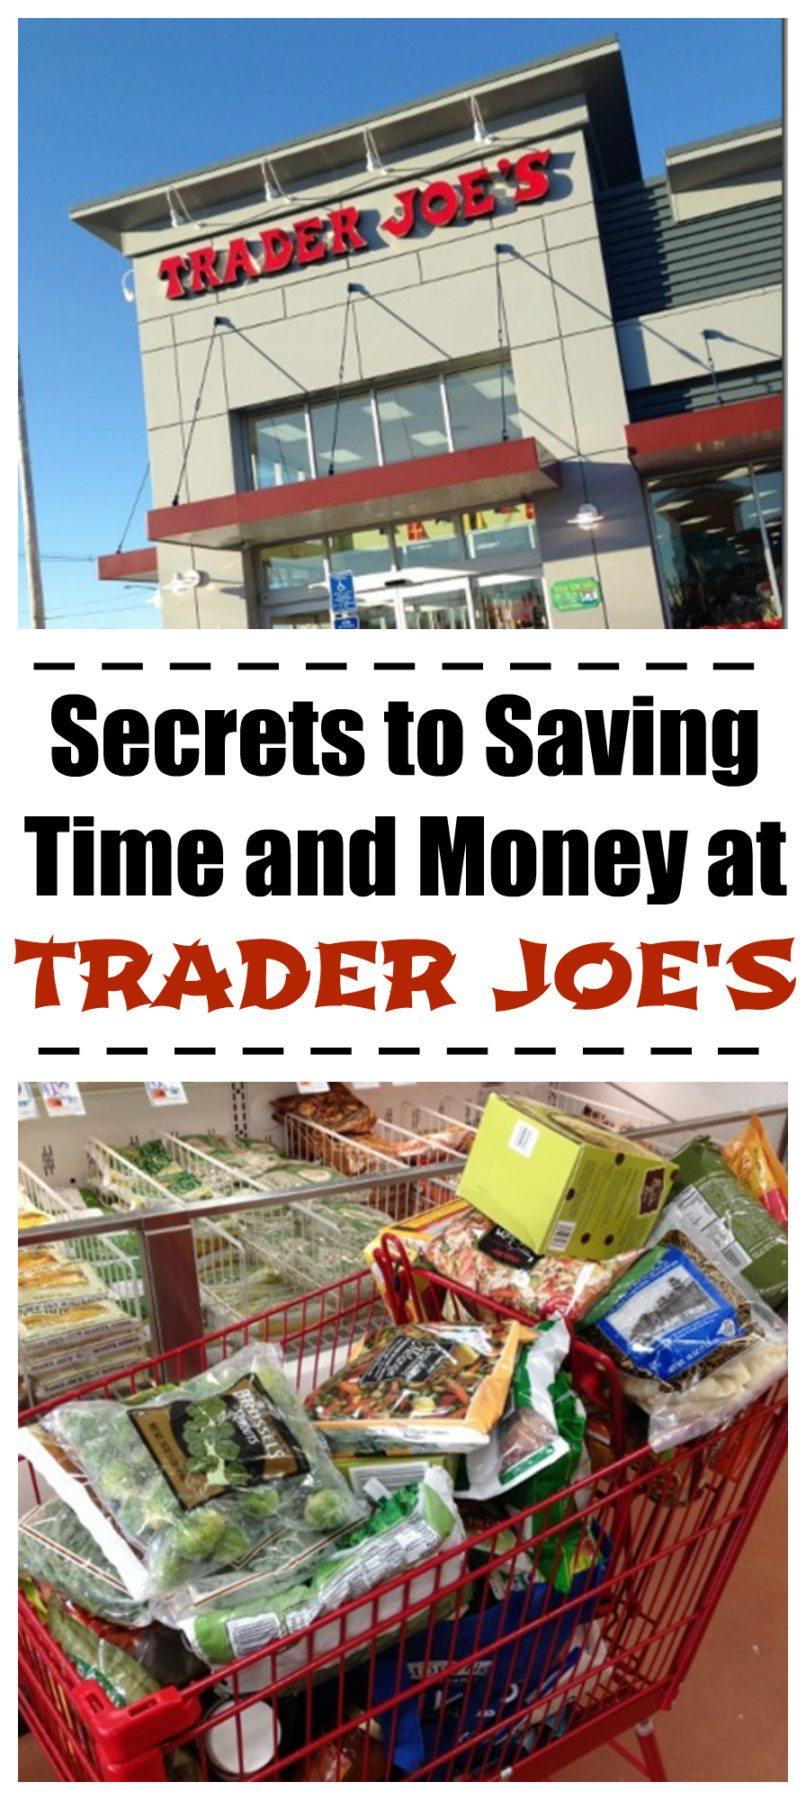 secrets-to-saving-time-and-money-at-trader-joes